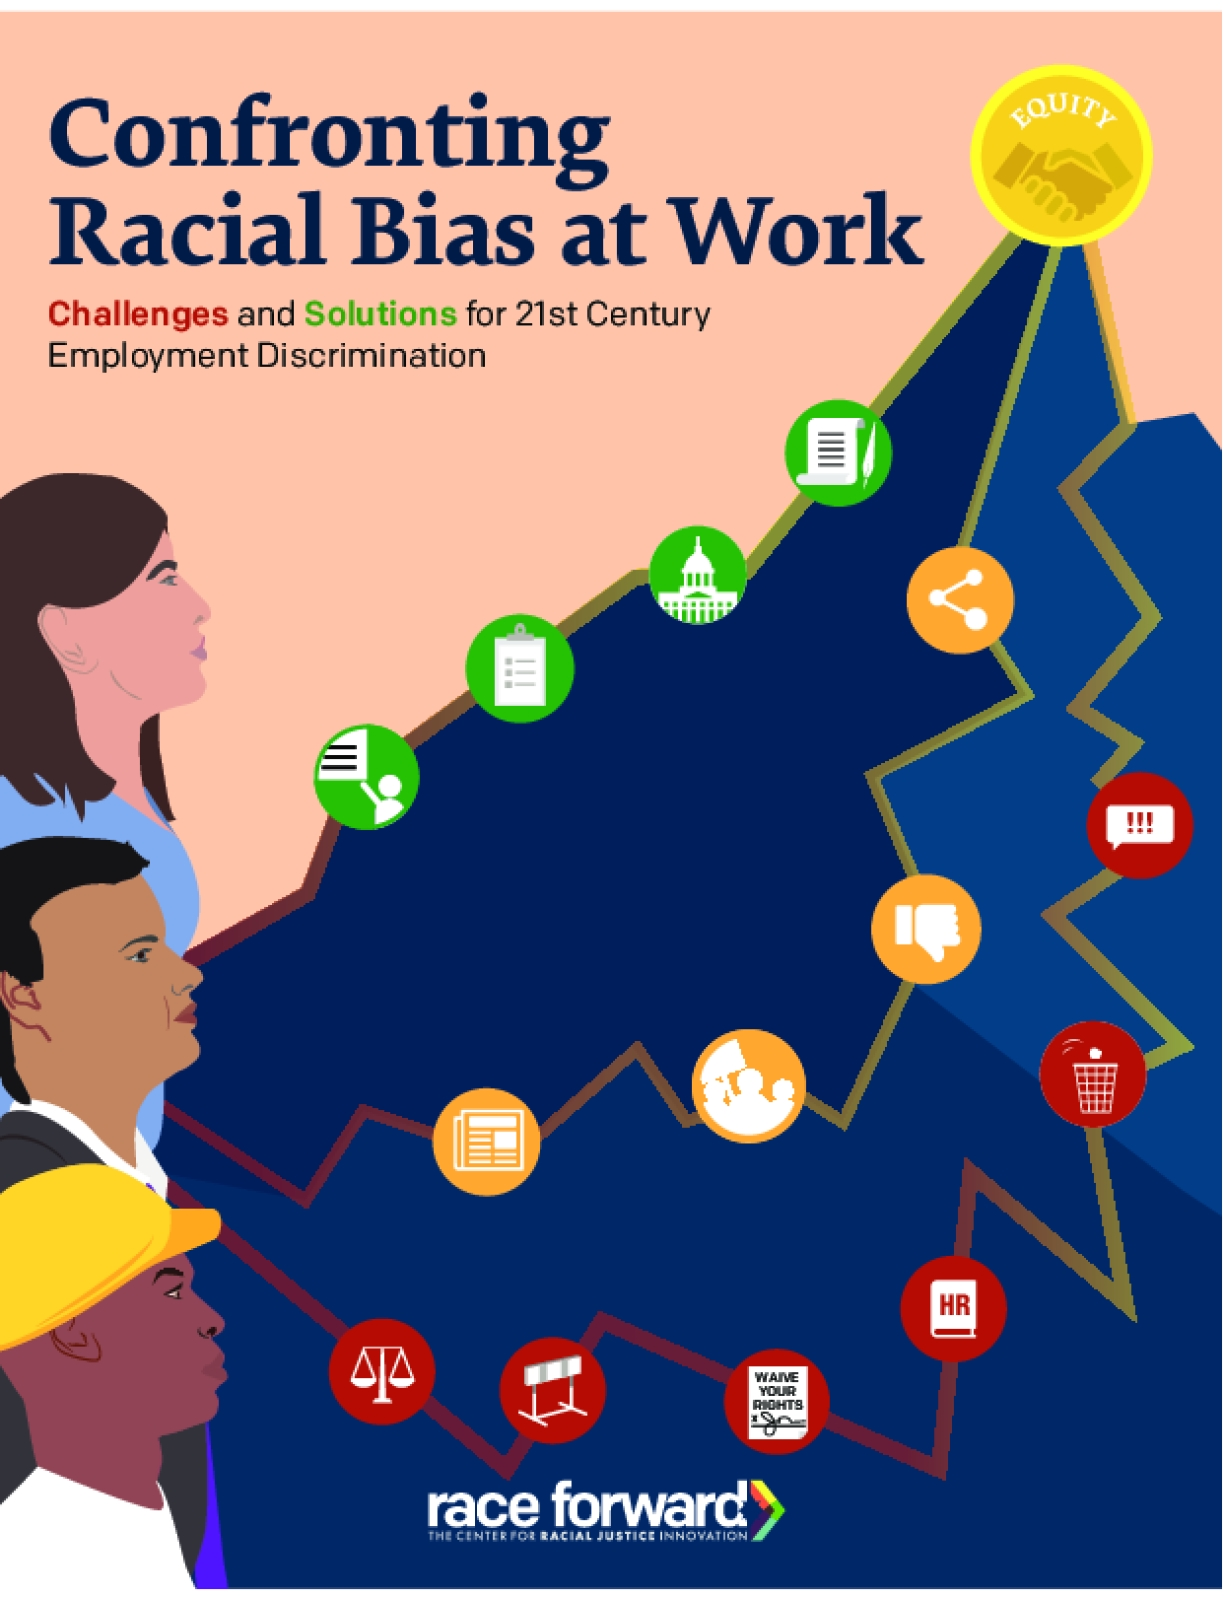 Confronting Racial Bias at Work